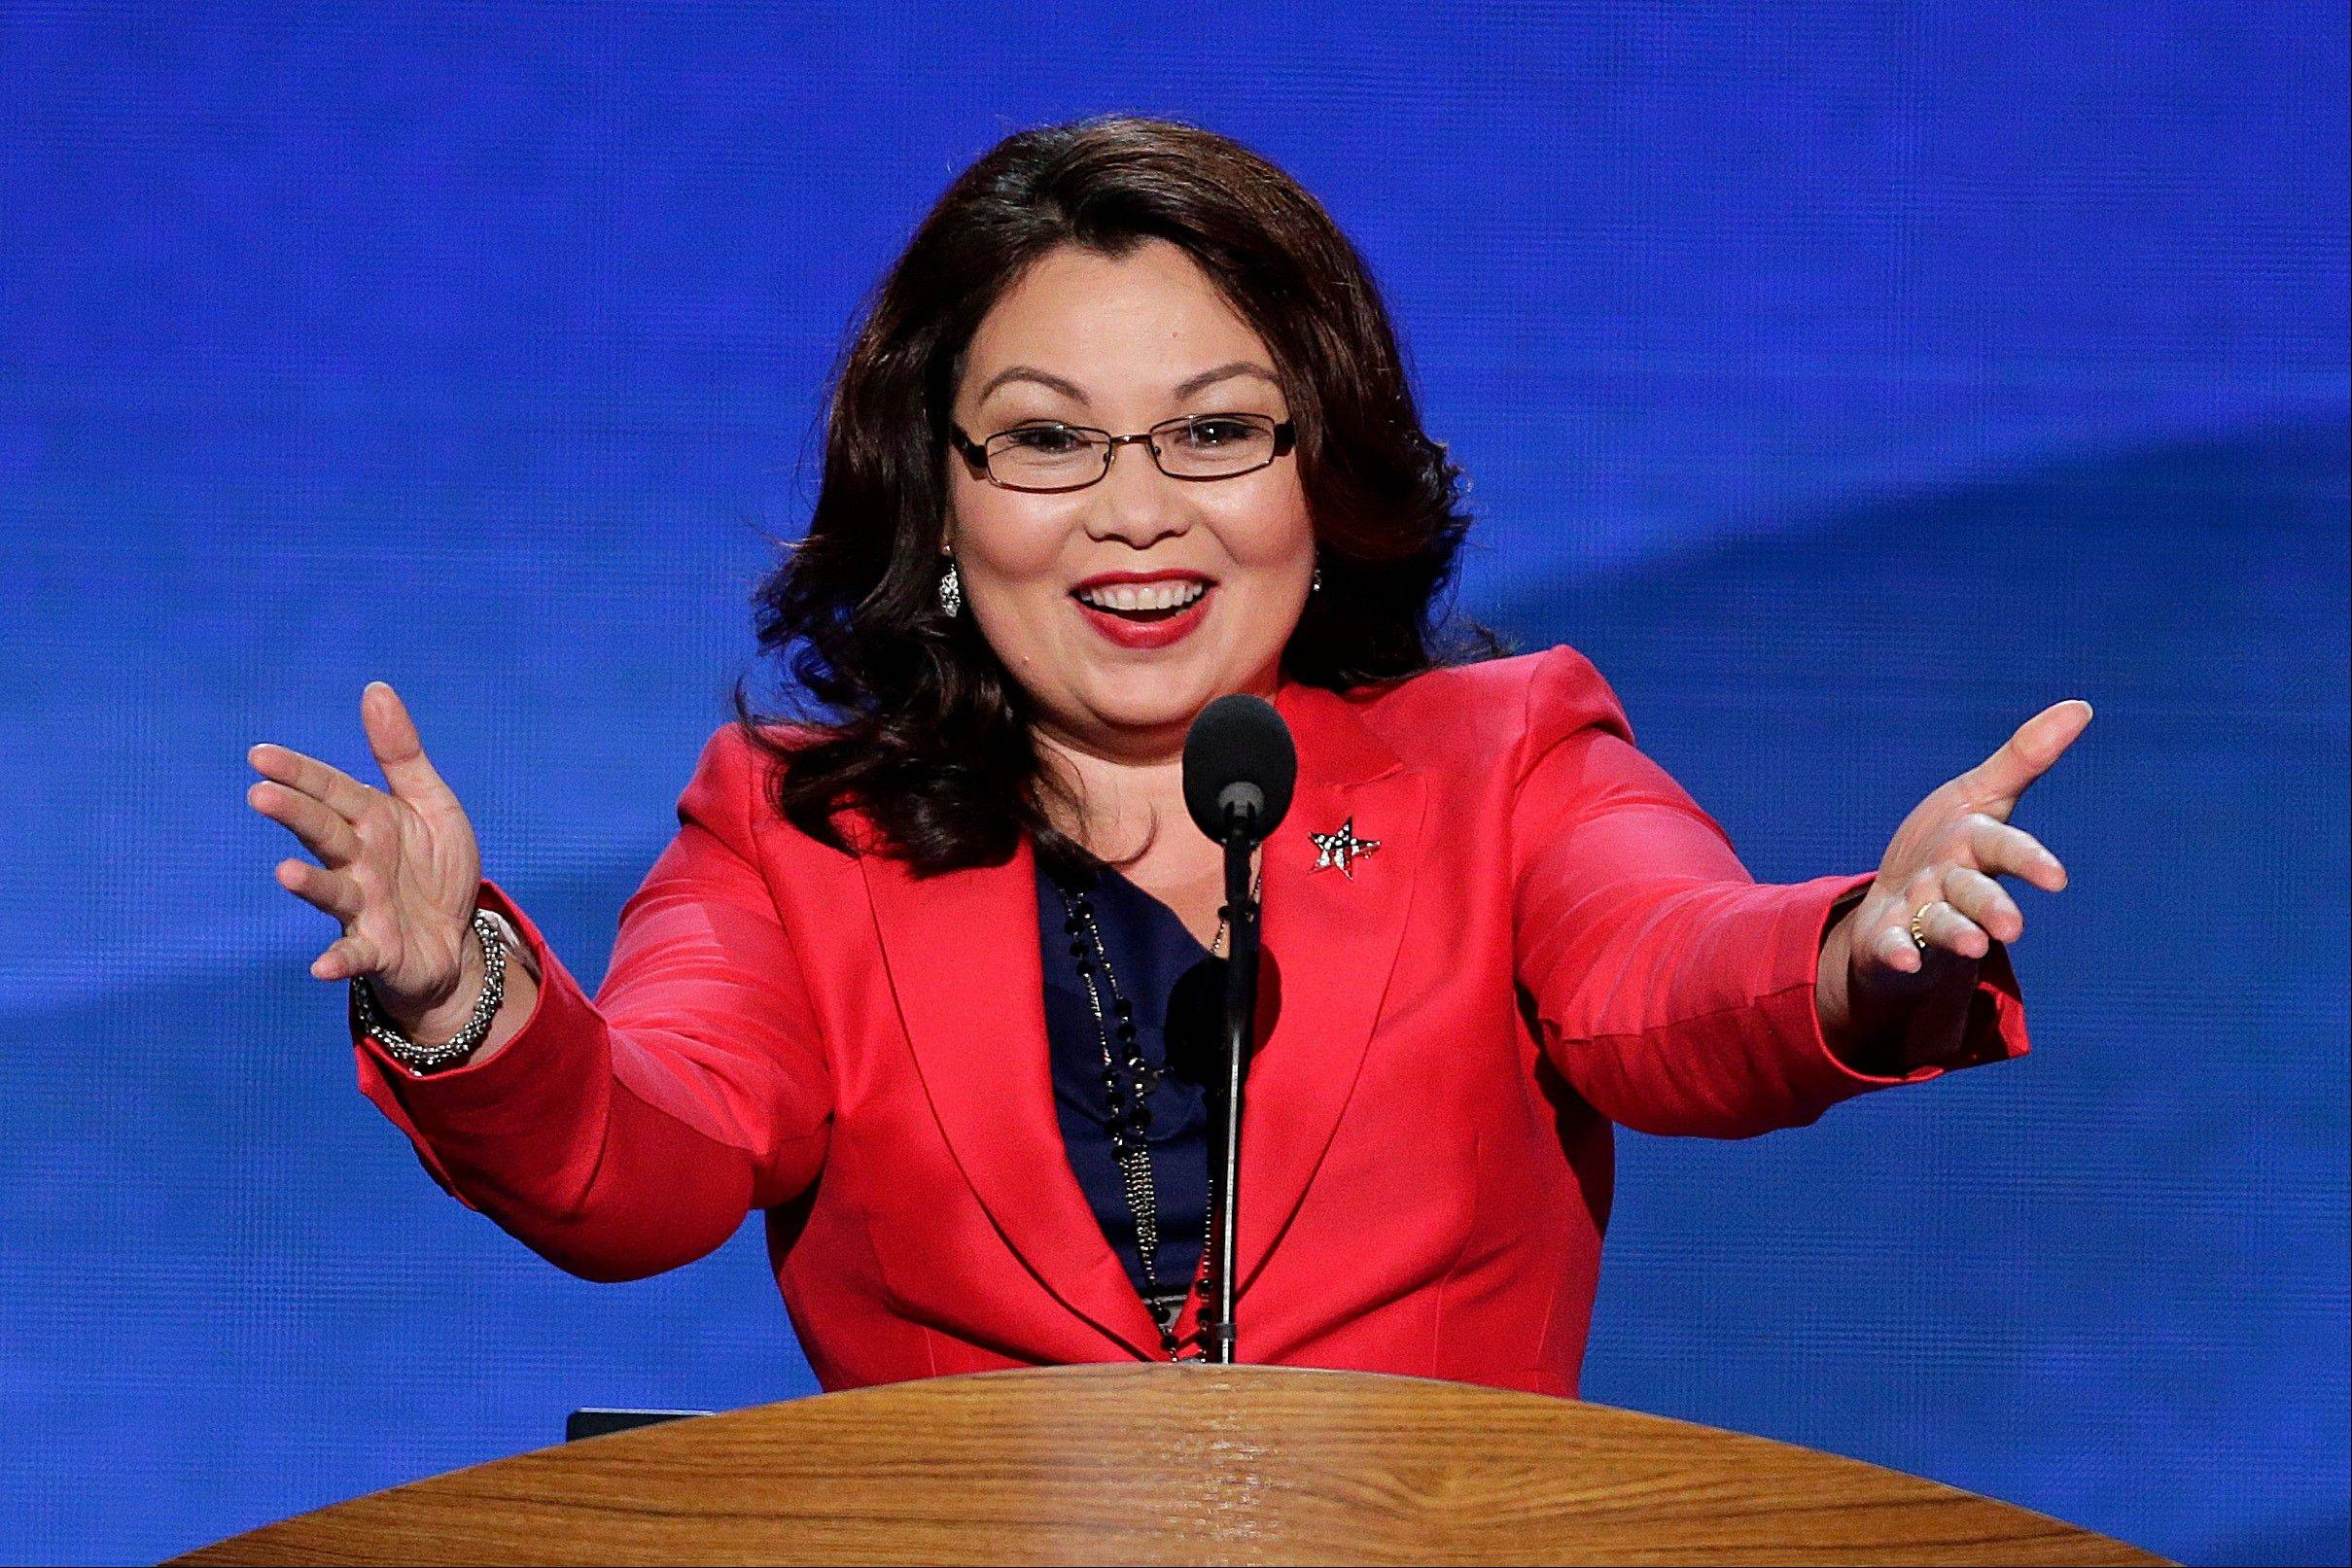 Former Assistant Secretary, U.S. Department of Veterans Affairs Tammy Duckworth addresses the Democratic National Convention in Charlotte, N.C., on Tuesday, Sept. 4, 2012.